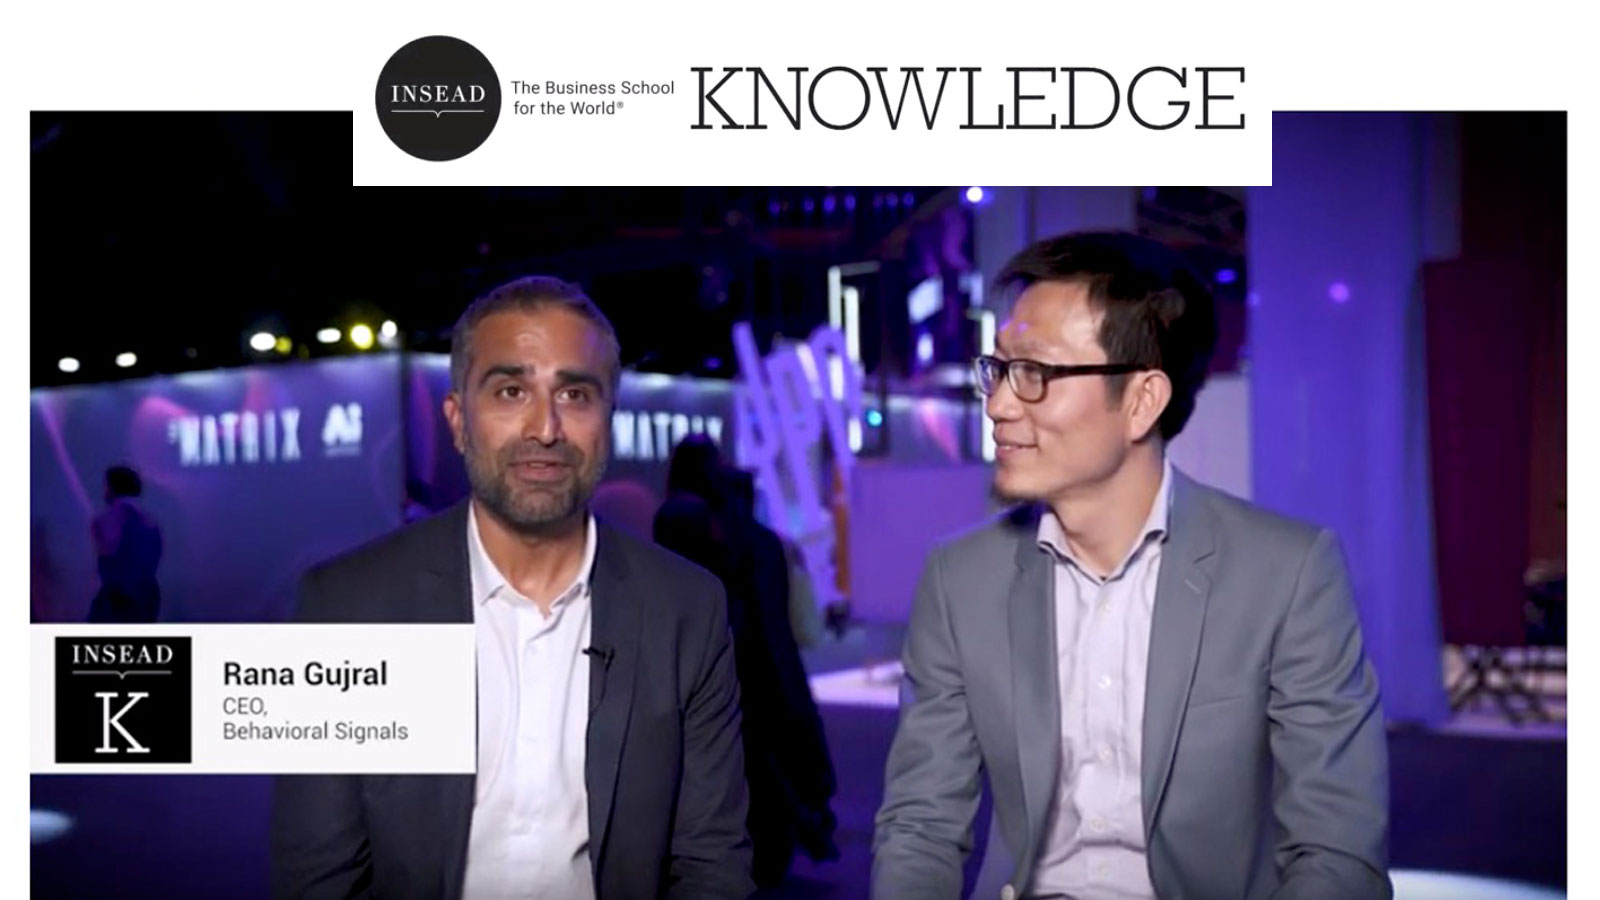 Behavioral Signals Rana Gujral interview at Digital INSEAD